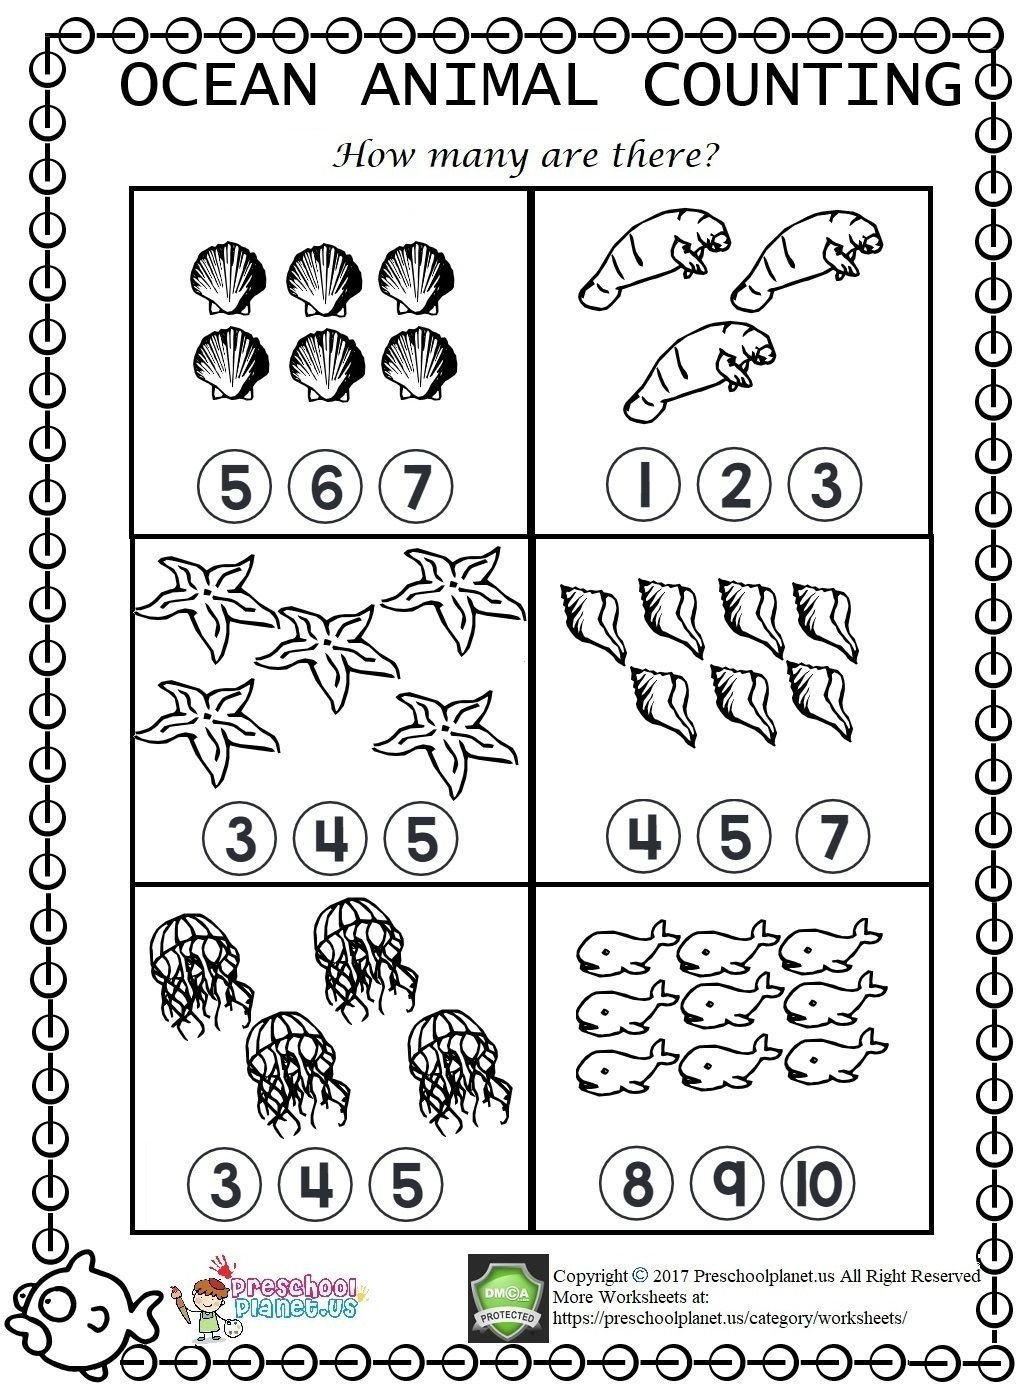 Counting Worksheets Preschool Sea Animal Counting Worksheet for Kindergarten and Preschool